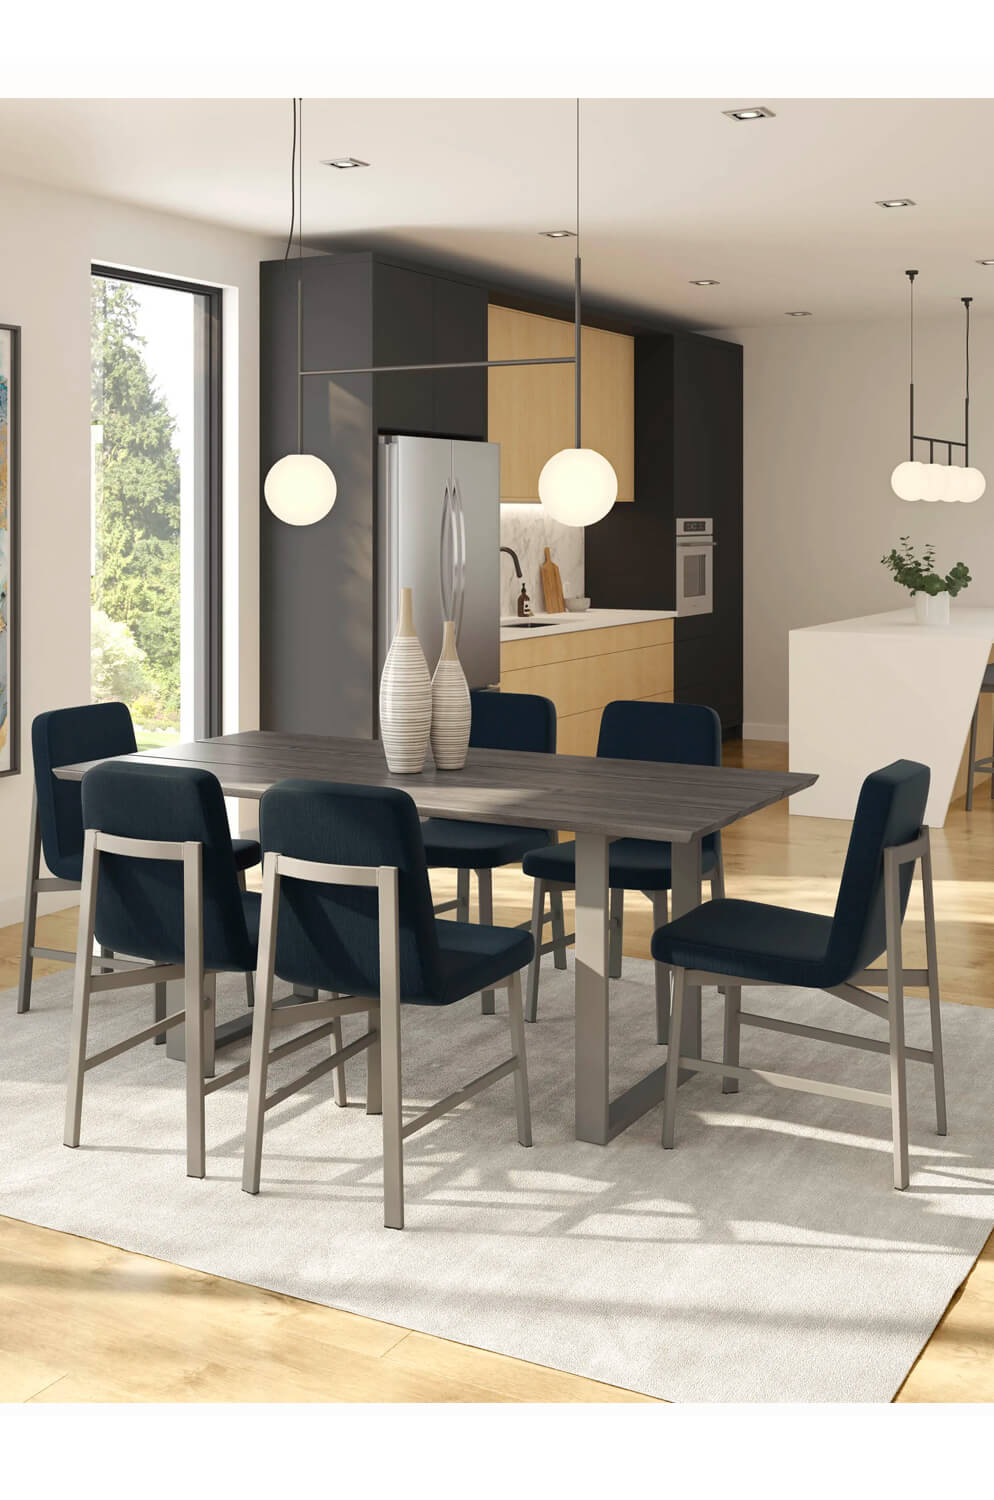 Buy Amisco S Waverly Modern Dining Chair 30353 Free Shipping